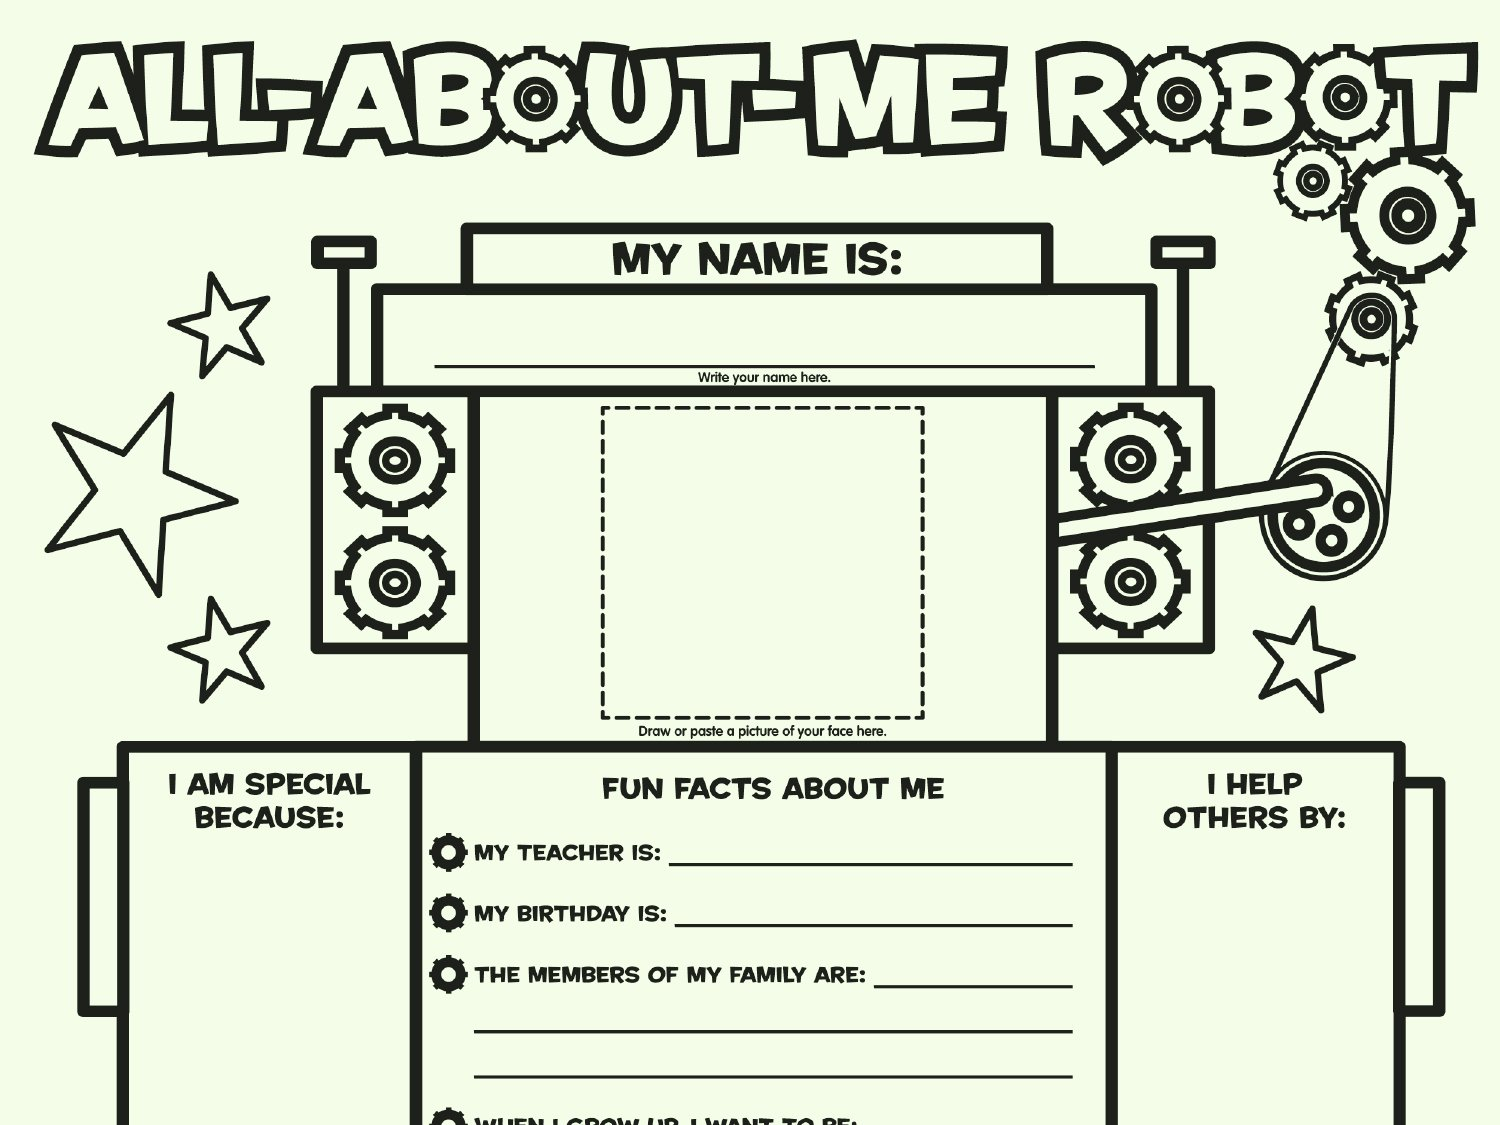 All About Me Worksheet Pdf Unique All About Me Robot Fill In Poster